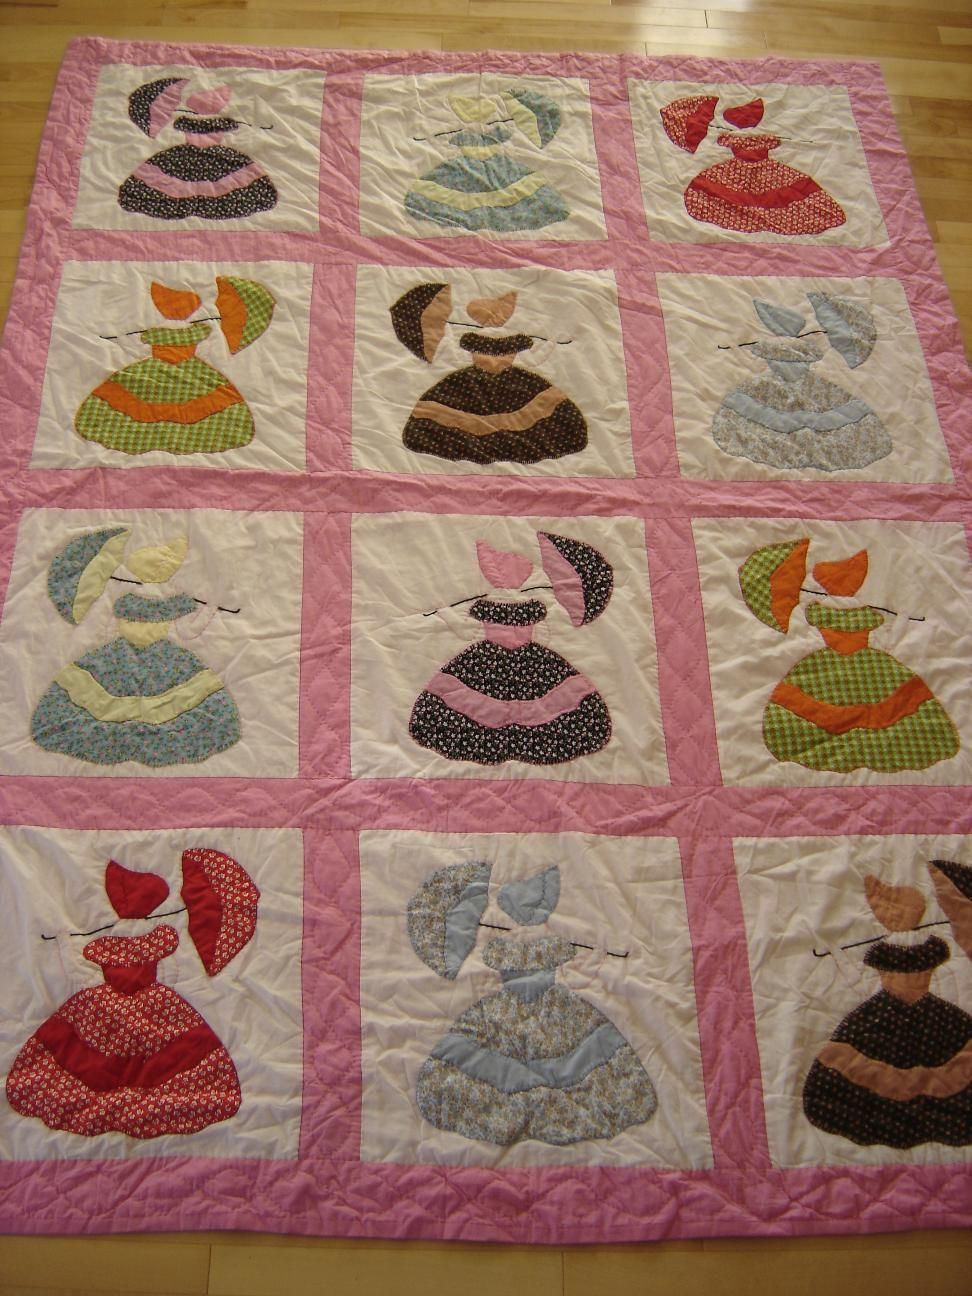 Dutch Girl Quilt | Q Sunbonnet, Girls, Fashion Quilts | Pinterest - Free Printable Dutch Girl Quilt Pattern